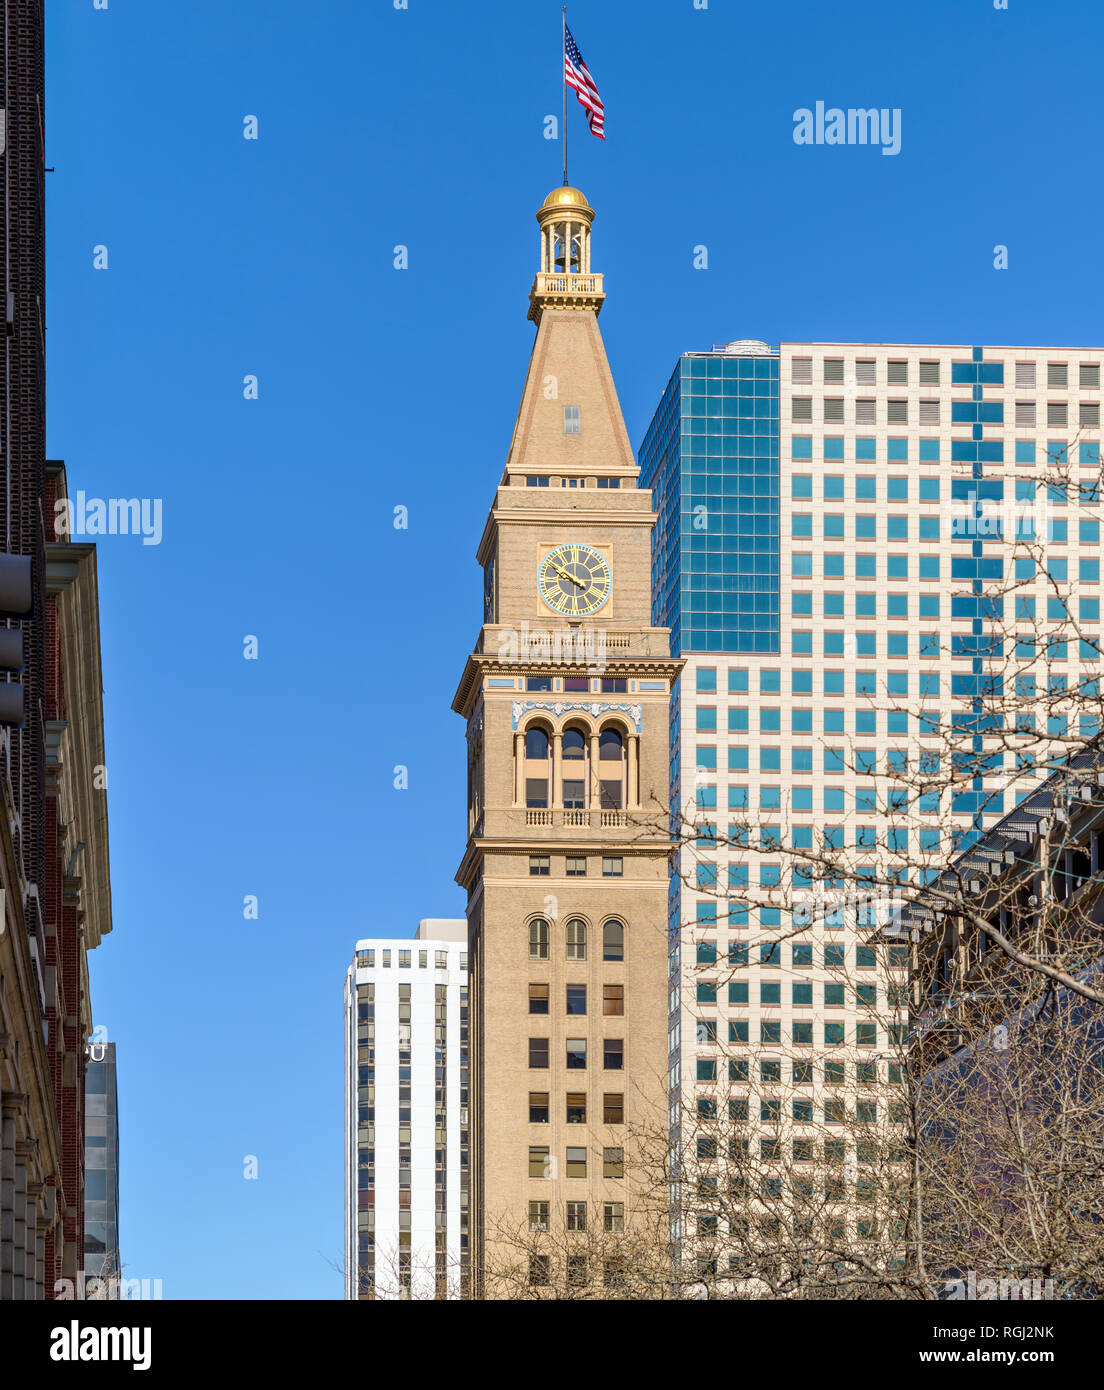 The Daniels and Fisher Tower - A winter day view of Daniels and Fisher Tower, a historic landmark located on 16th street in Downtown Denver, CO, USA. - Stock Image